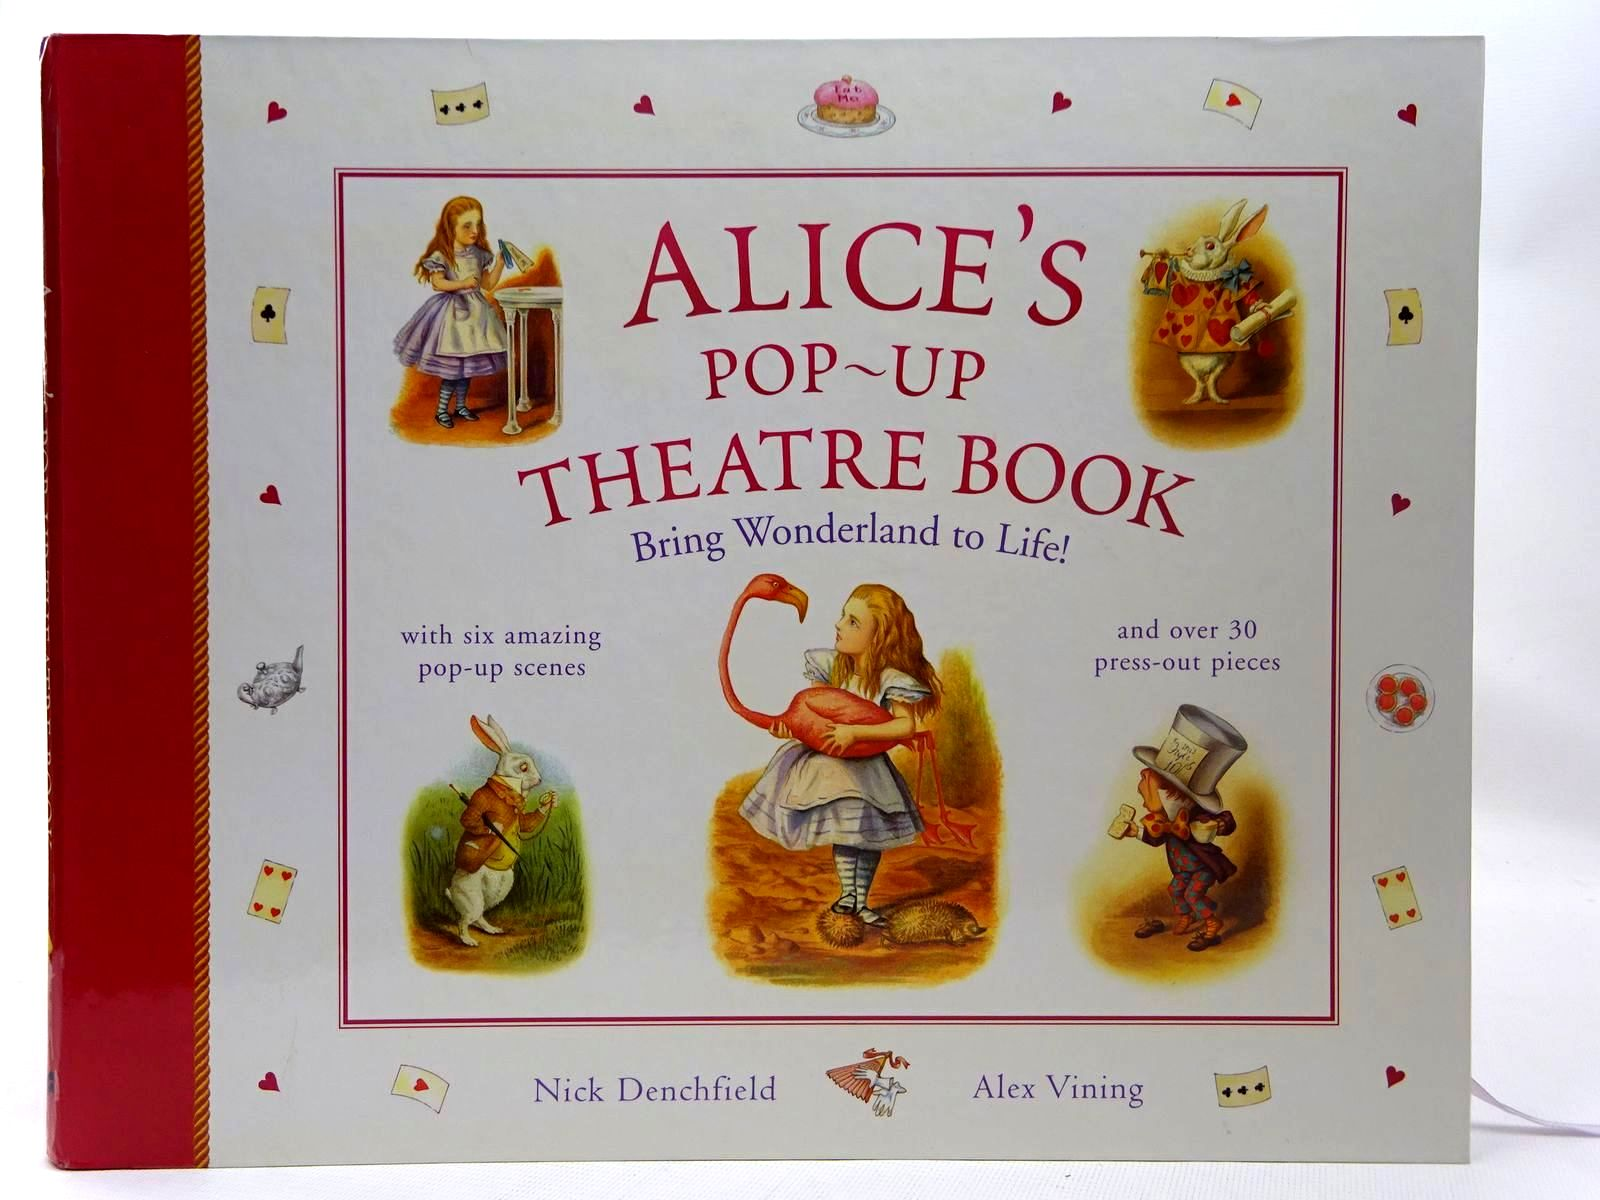 Photo of ALICE'S POP-UP THEATRE BOOK written by Carroll, Lewis Denchfield, Nick illustrated by Vining, Alex published by Macmillan Children's Books (STOCK CODE: 2126638)  for sale by Stella & Rose's Books